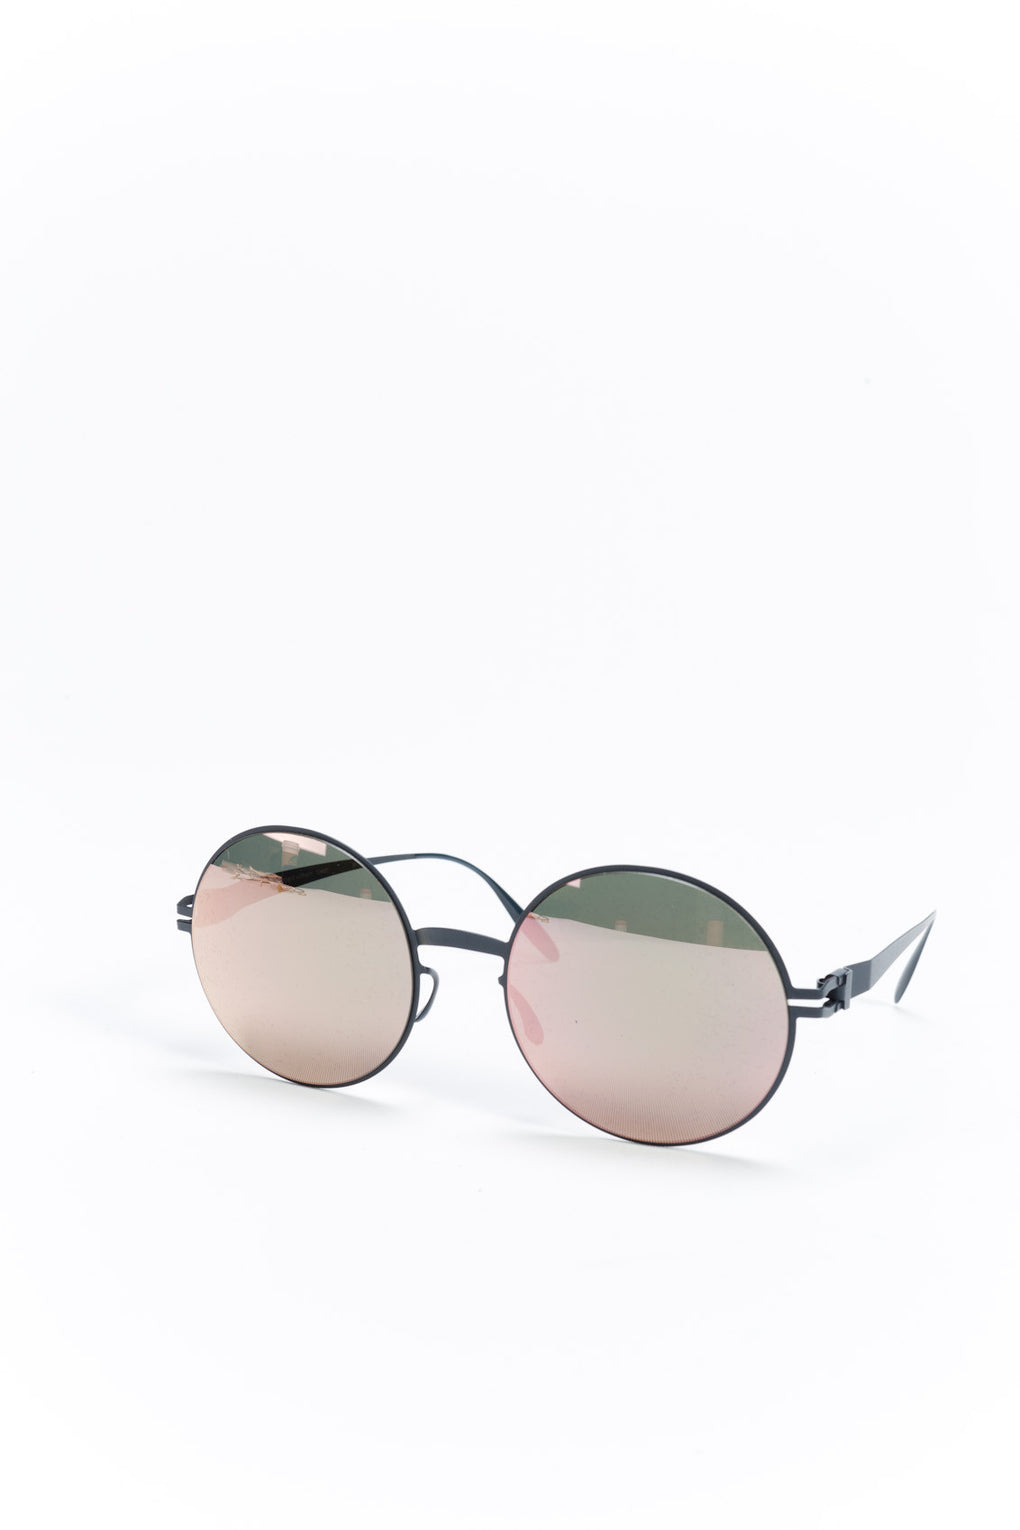 Janis Sunglasses Navy Blue/Rosegold